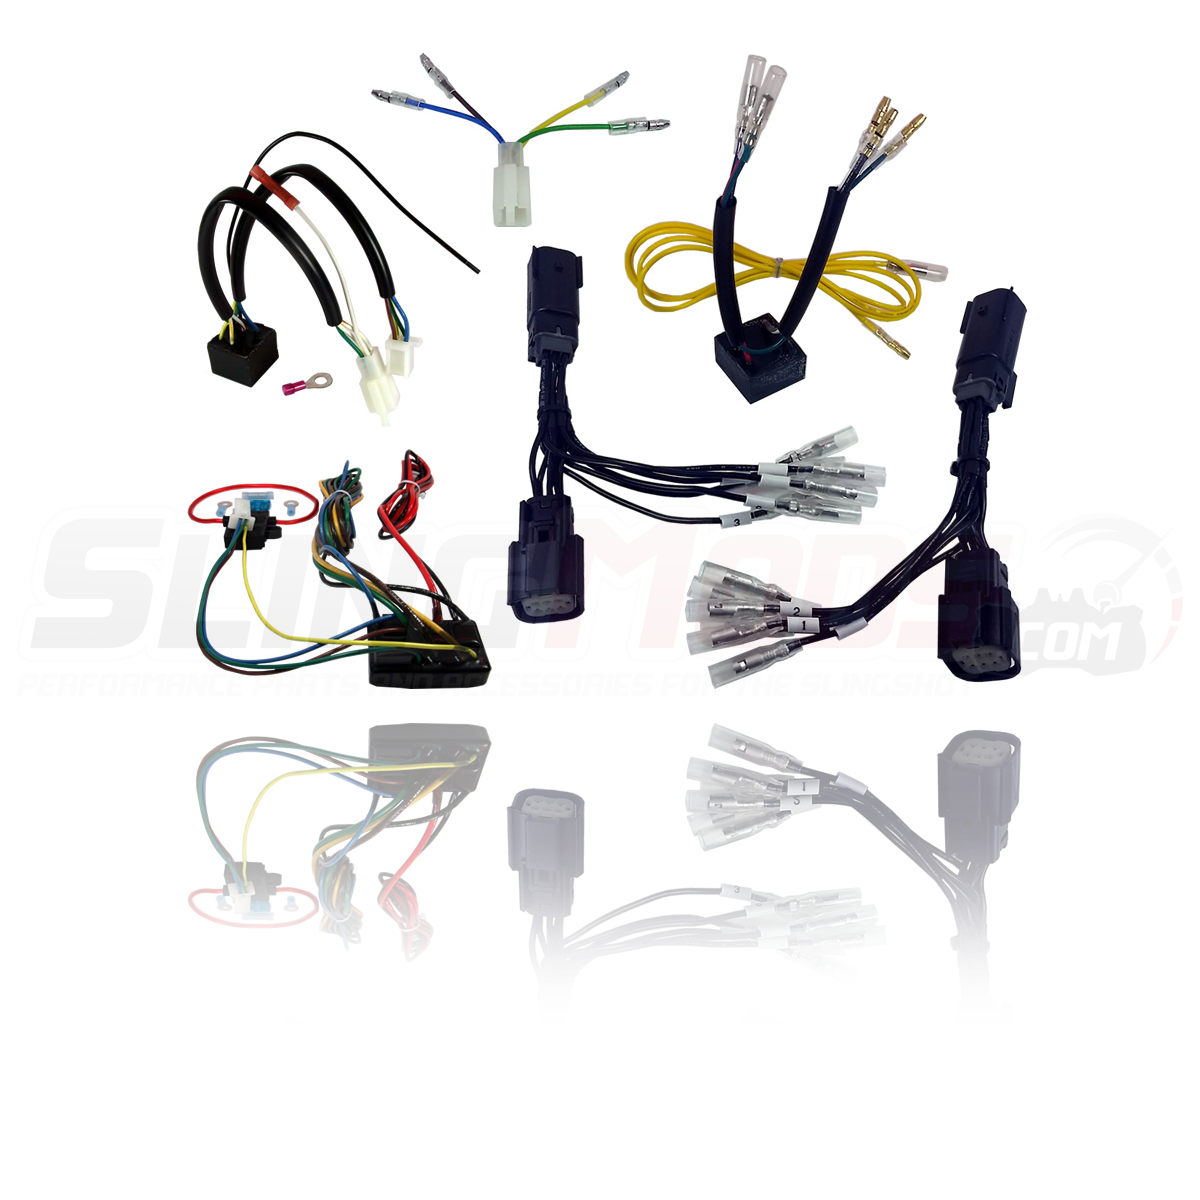 Polaris Wiring Harness Diagram Third Level Rhino 700 Fuel Filter Slingshot Trailer Hitch Massey Ferguson Electrical Connection